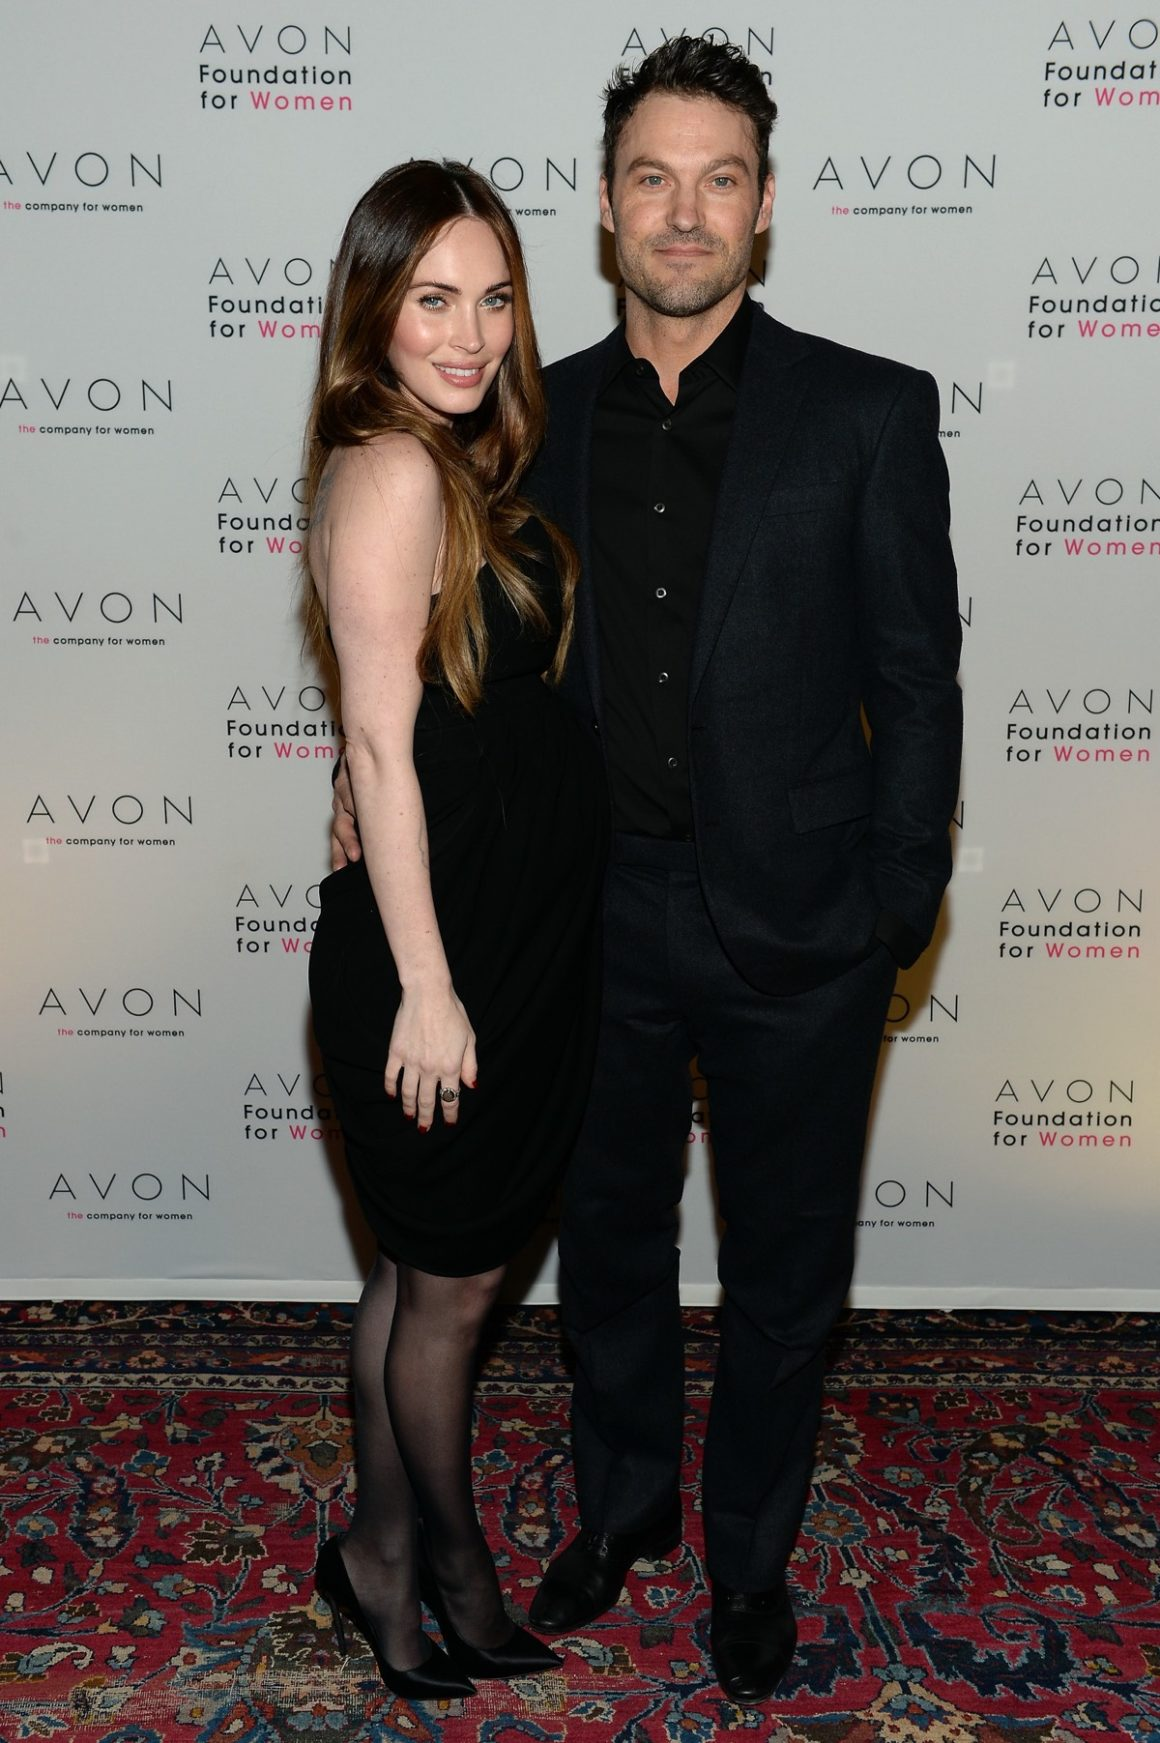 Megan Fox Helps Avon Foundation Launch #SeeTheSigns of Domestic Violence CampaignNovember 25, 2013 – The Morgan Library & Museum